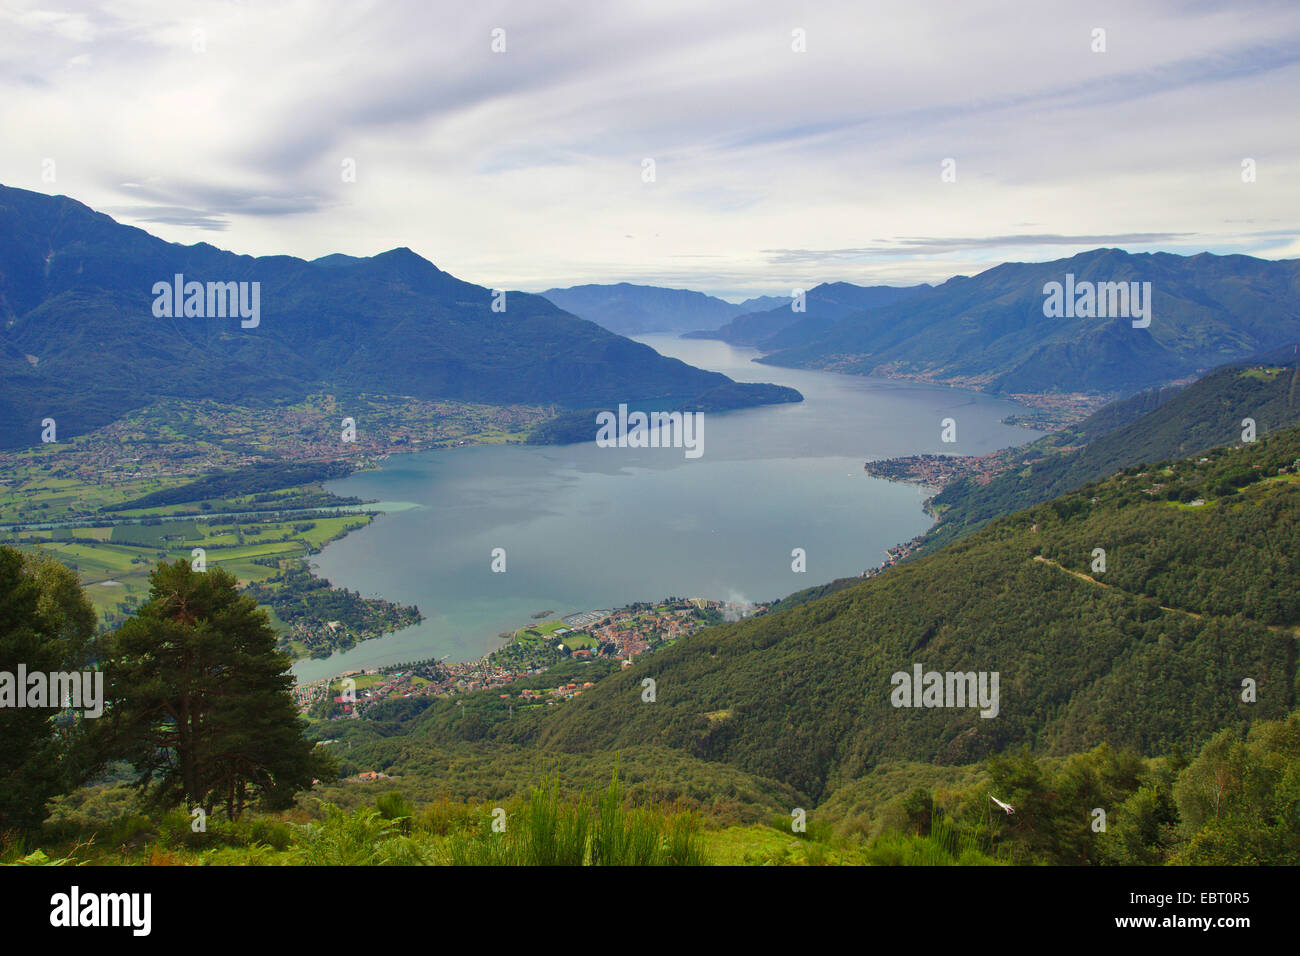 north end of Lake Como, Italy, Lake Como - Stock Image